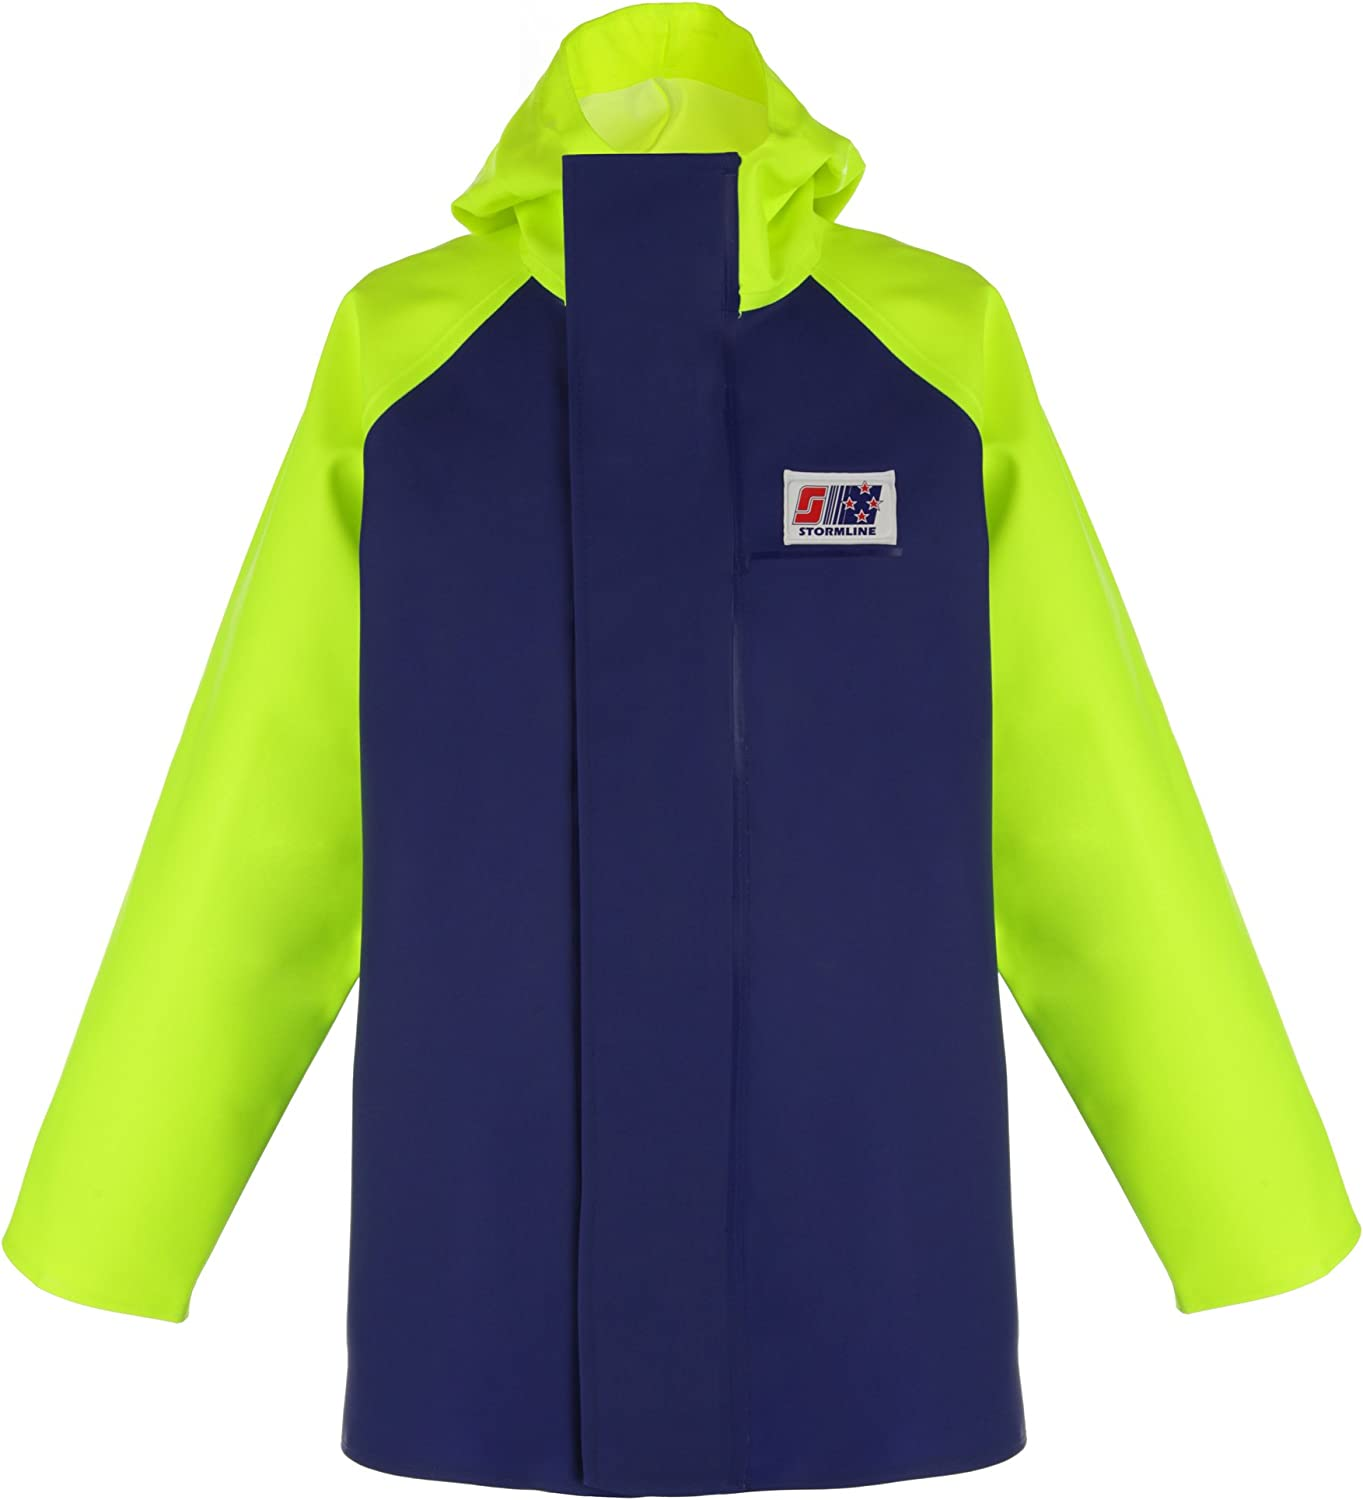 Stormline Crew 255 Max 45% OFF Fishing Rain Jacket OFFicial mail order Gear Xtra-Large